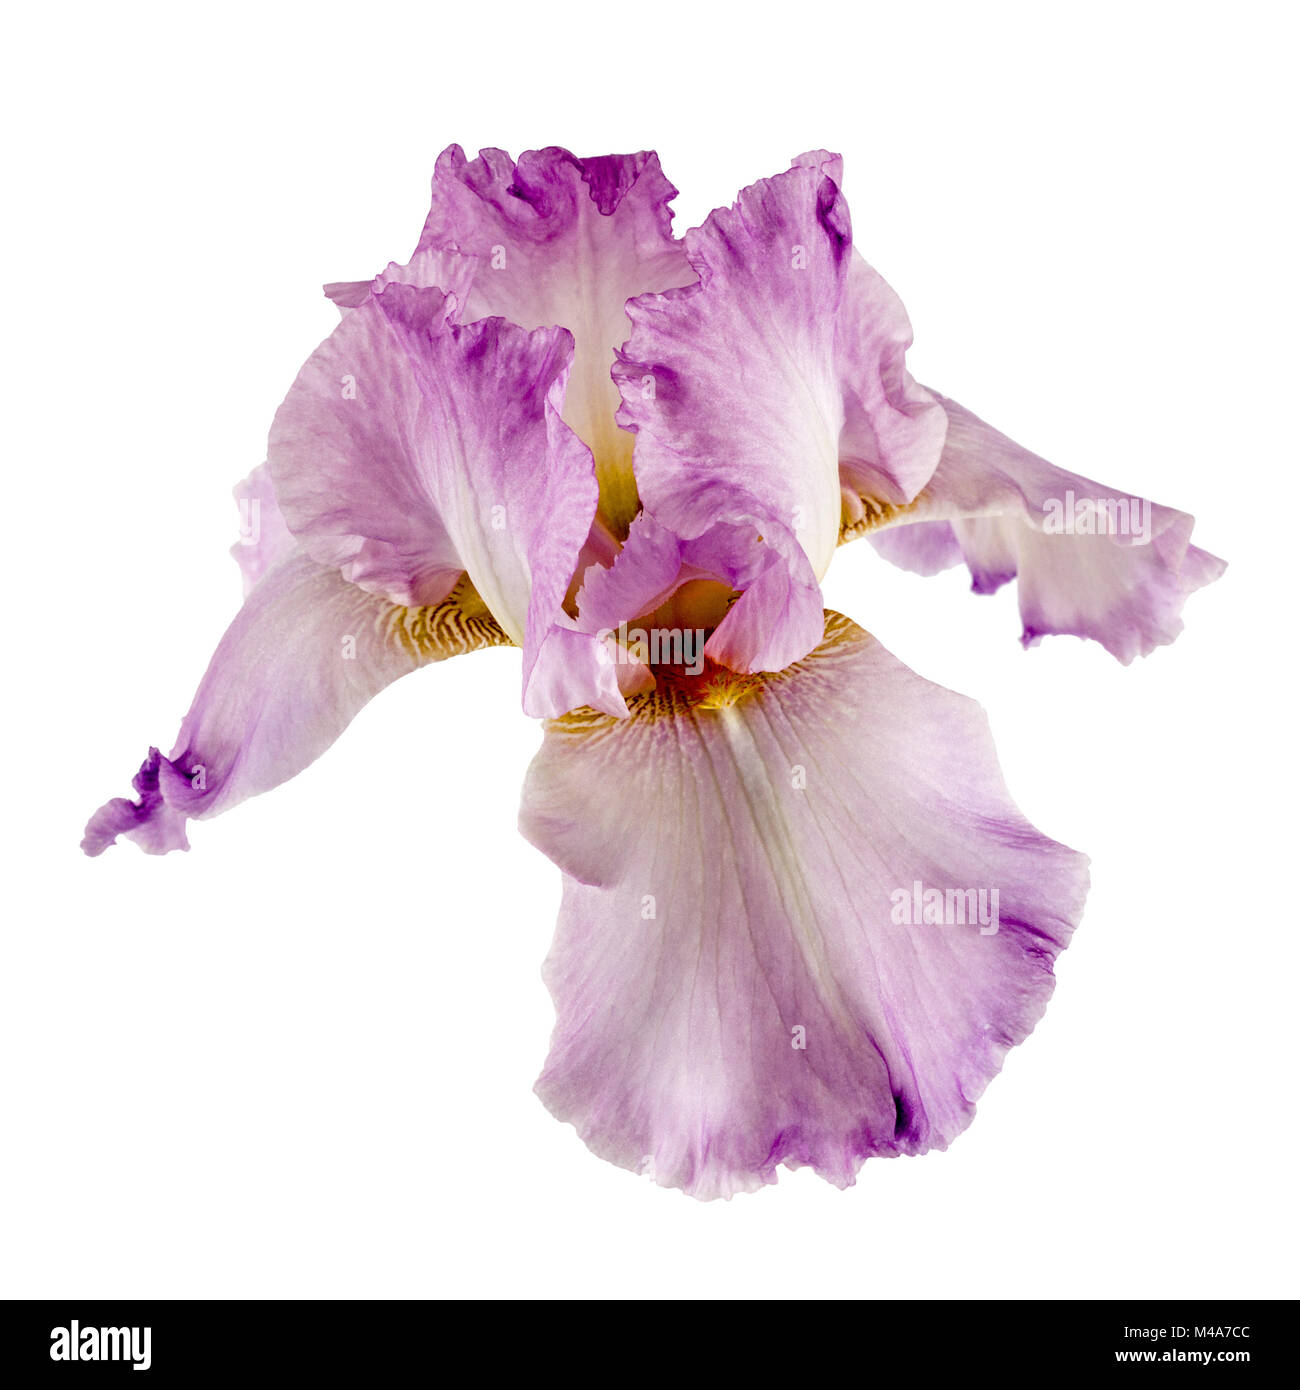 Violet flower of iris isolated on white background stock photo violet flower of iris isolated on white background izmirmasajfo